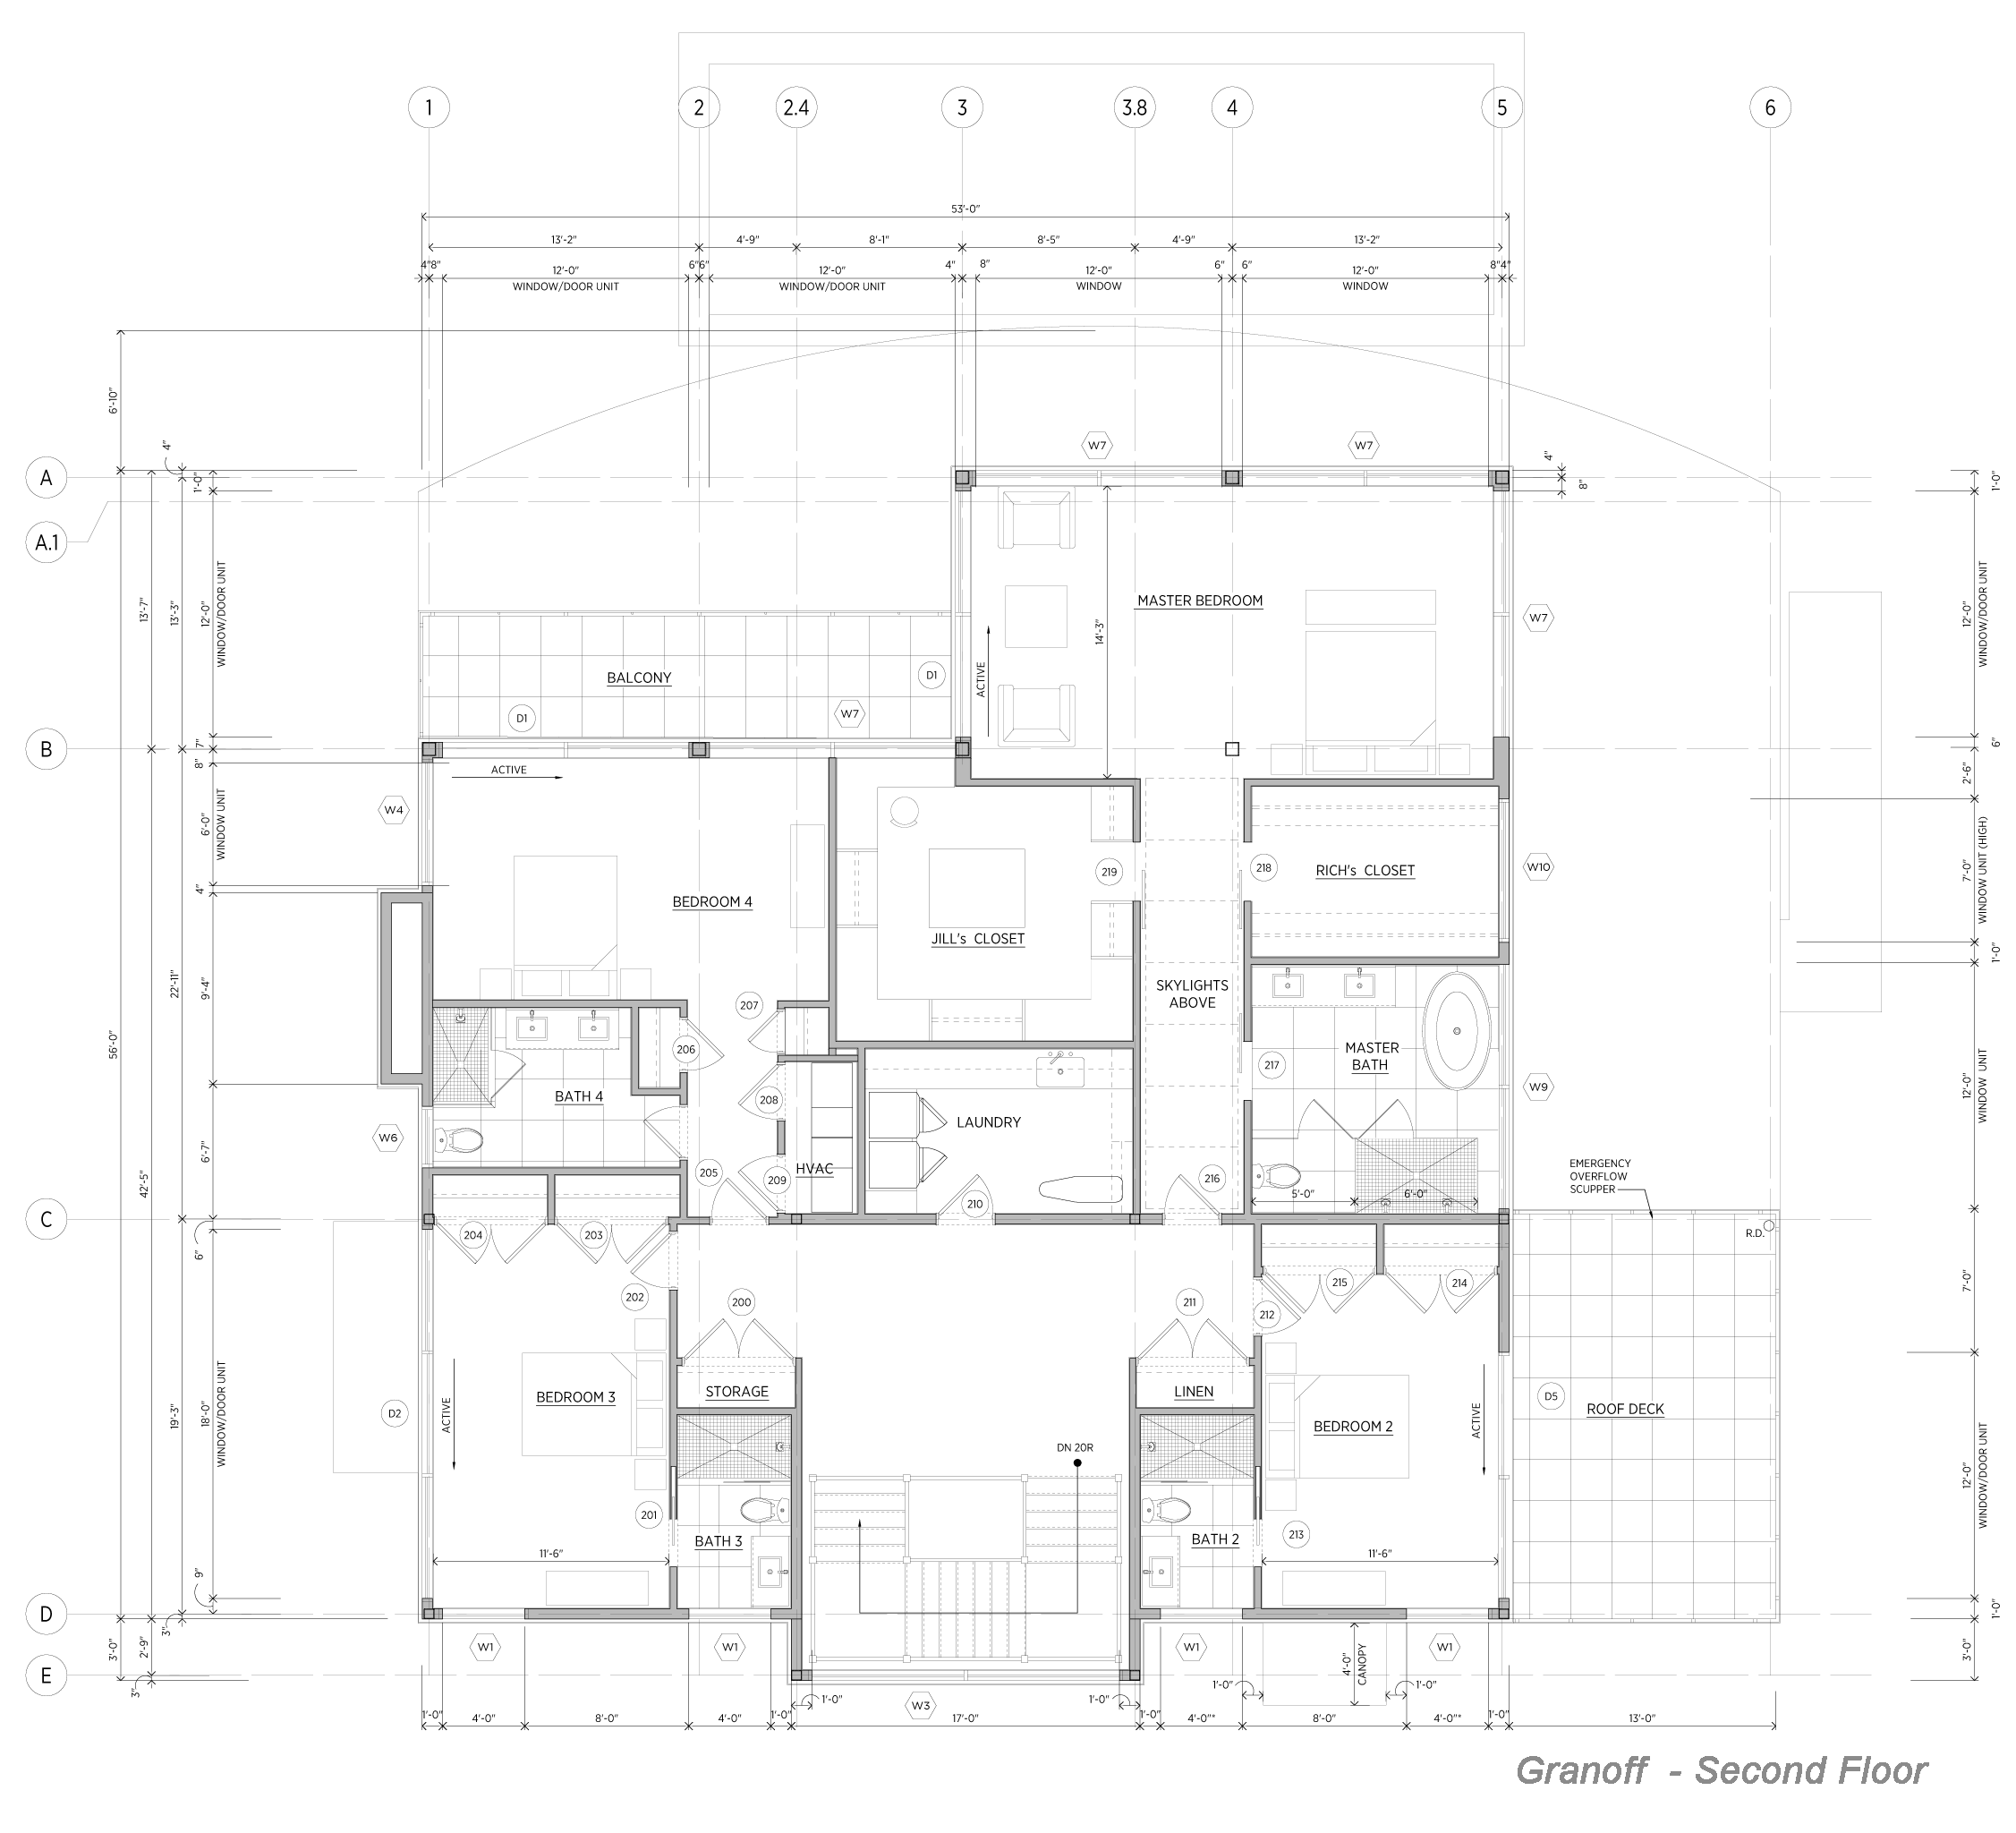 Plans-3 (flattened).png